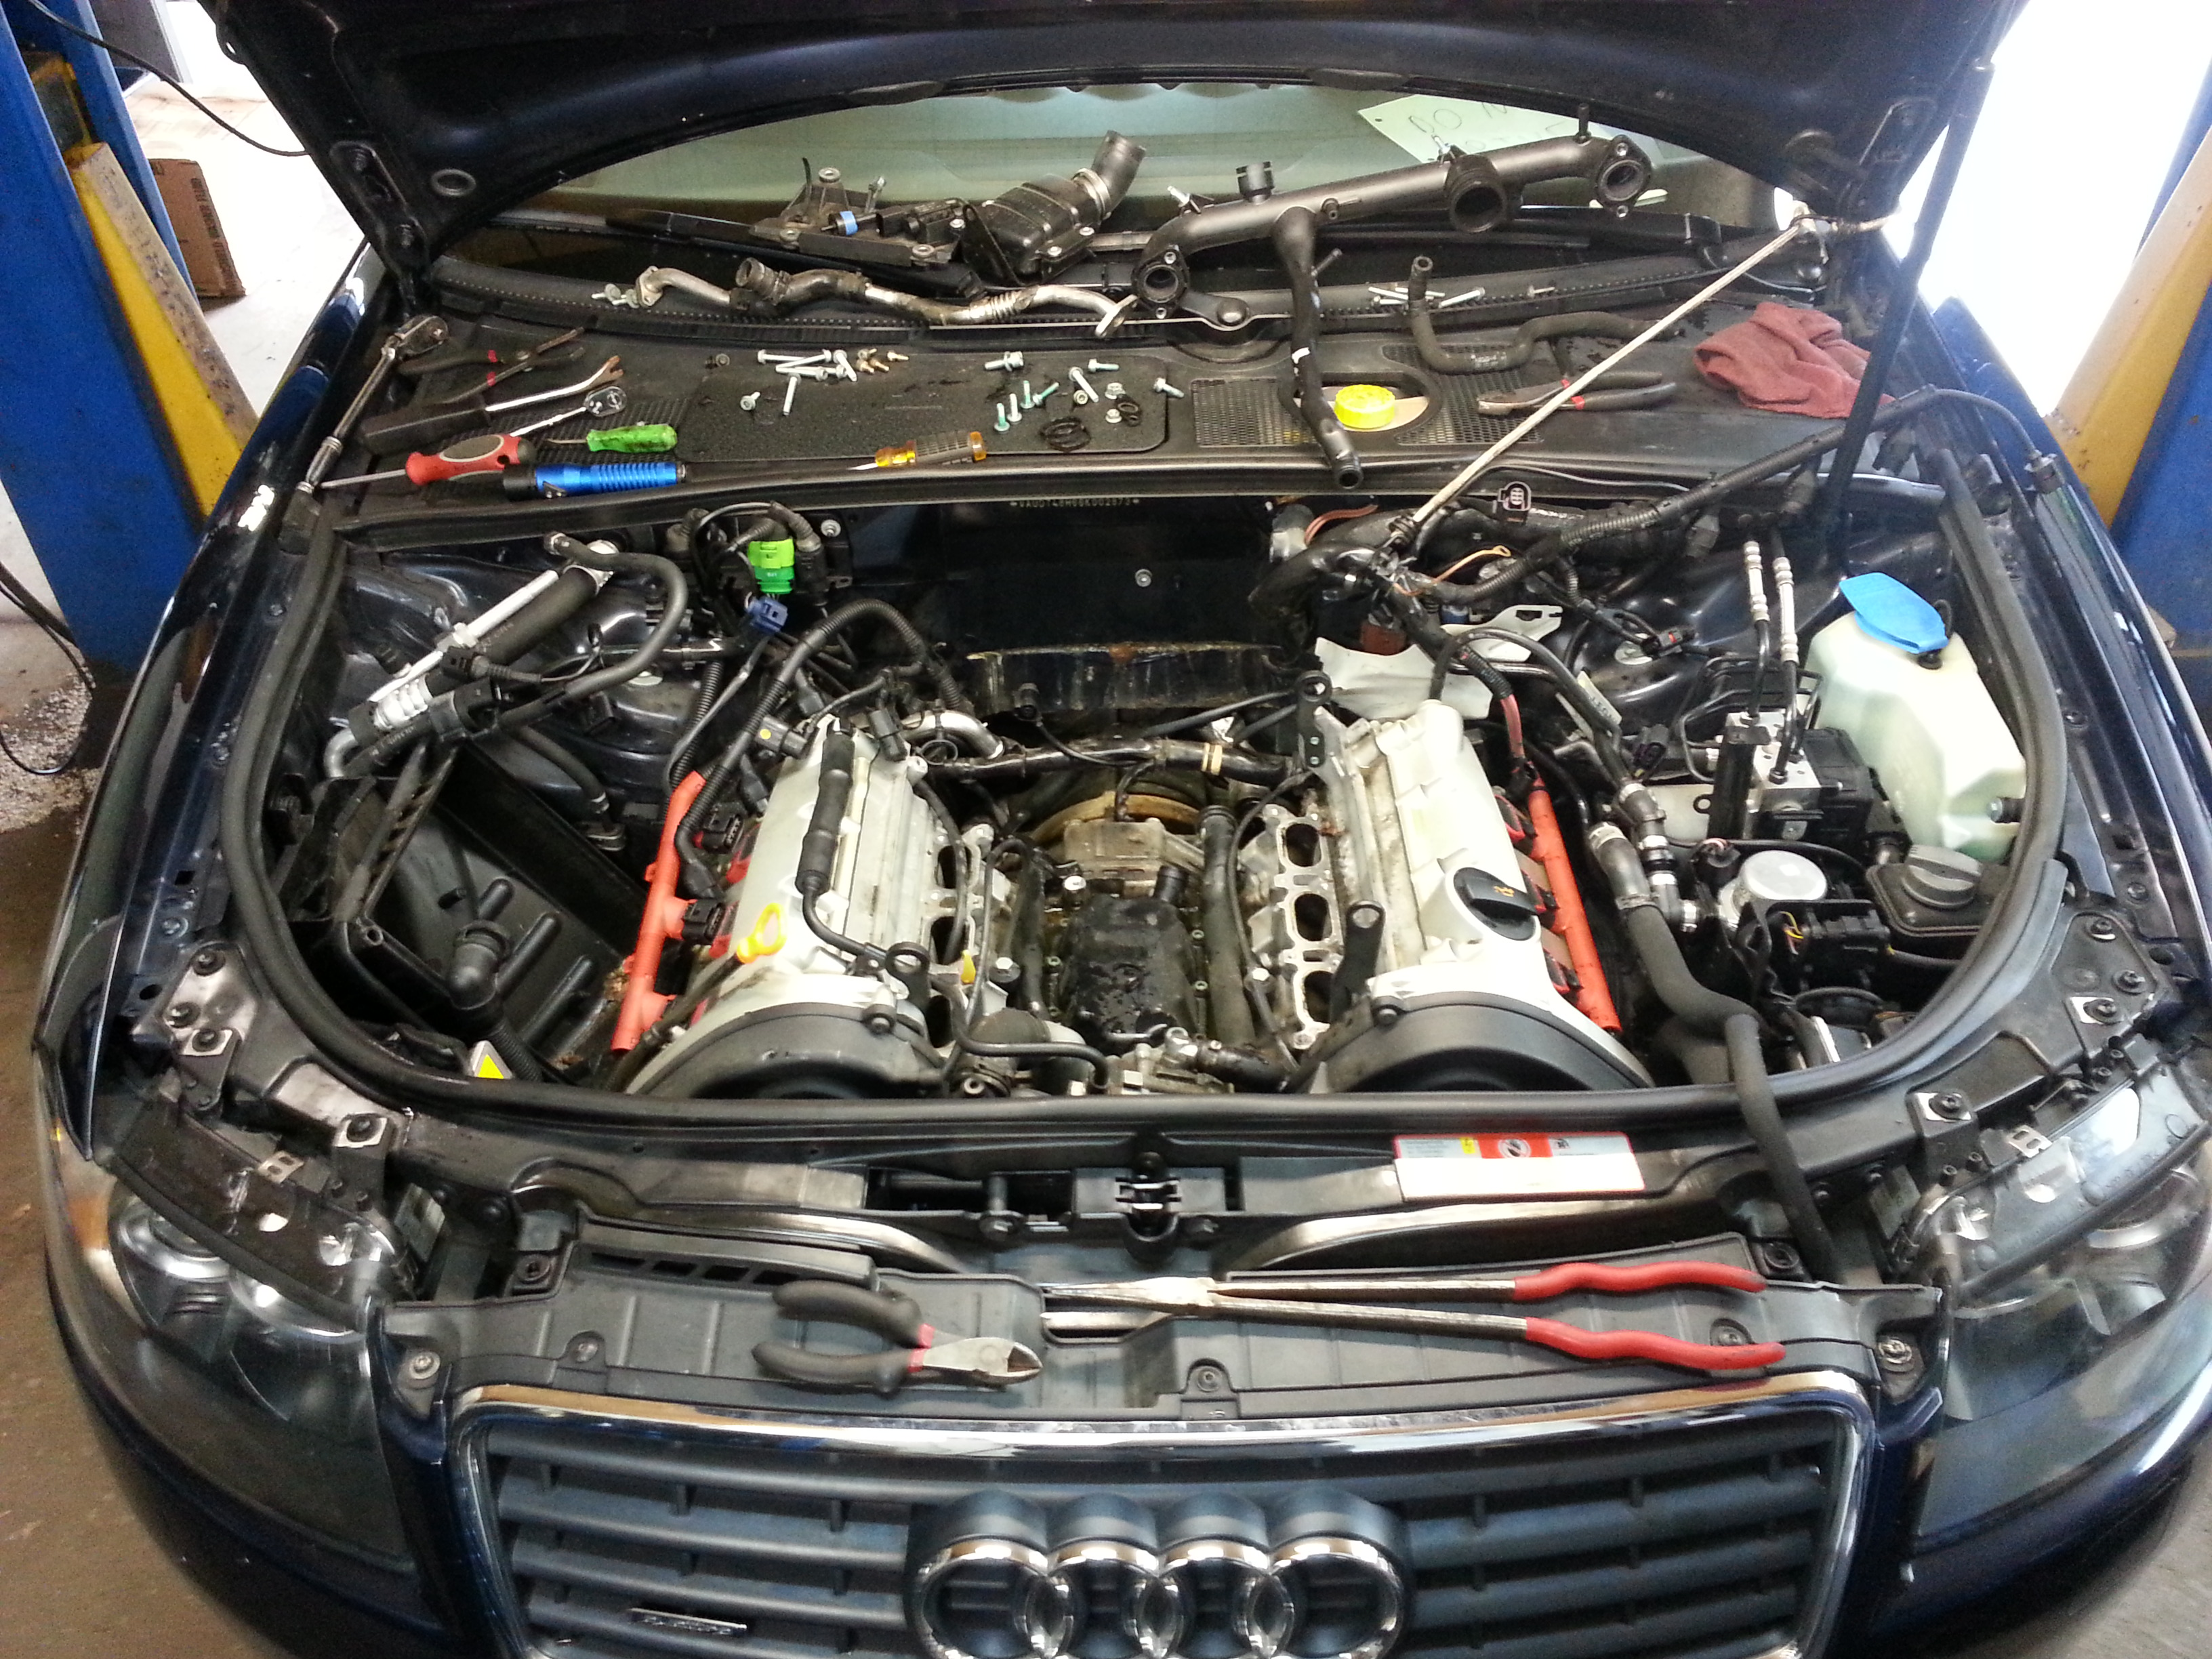 Audi coolant leak repair